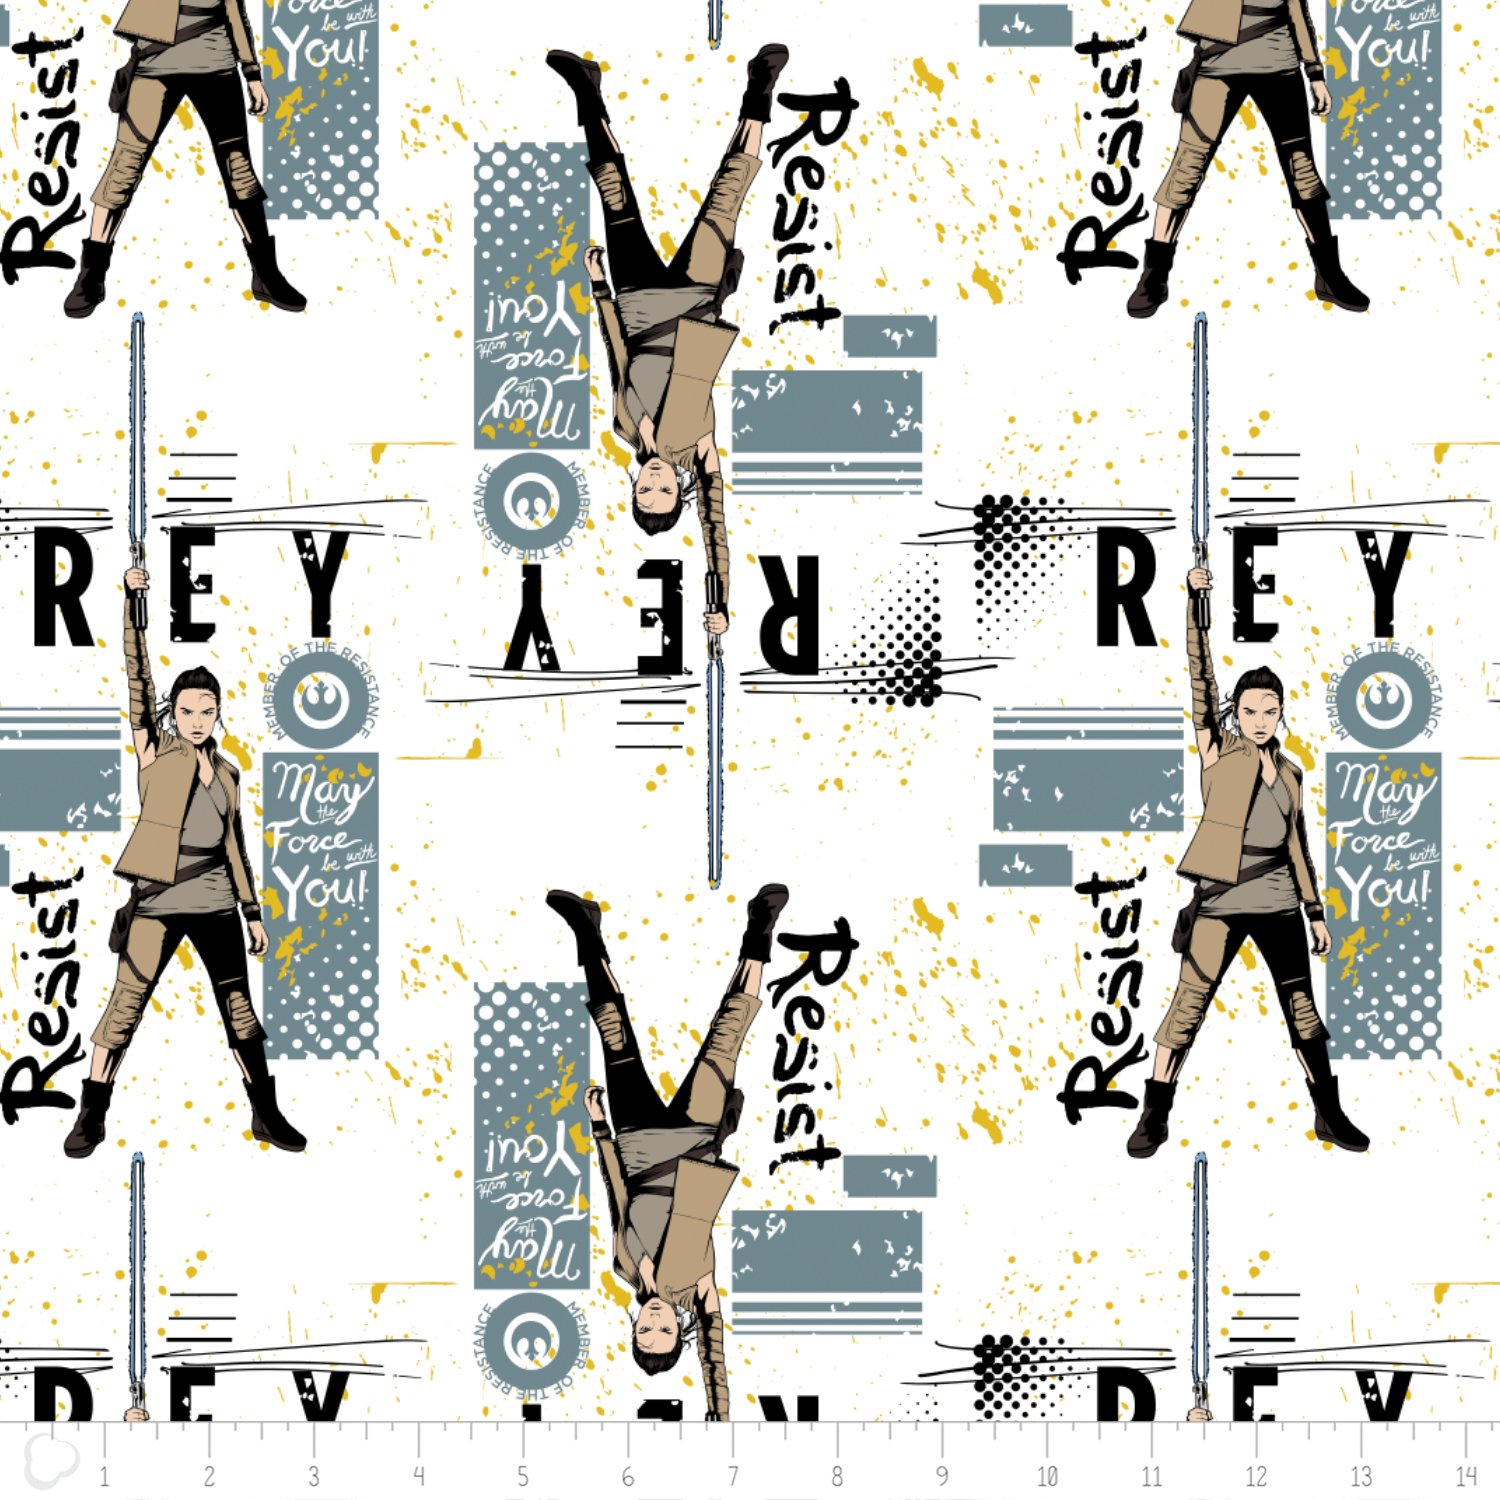 7360404-1_Lead Rey Last Jedi Star Wars 8